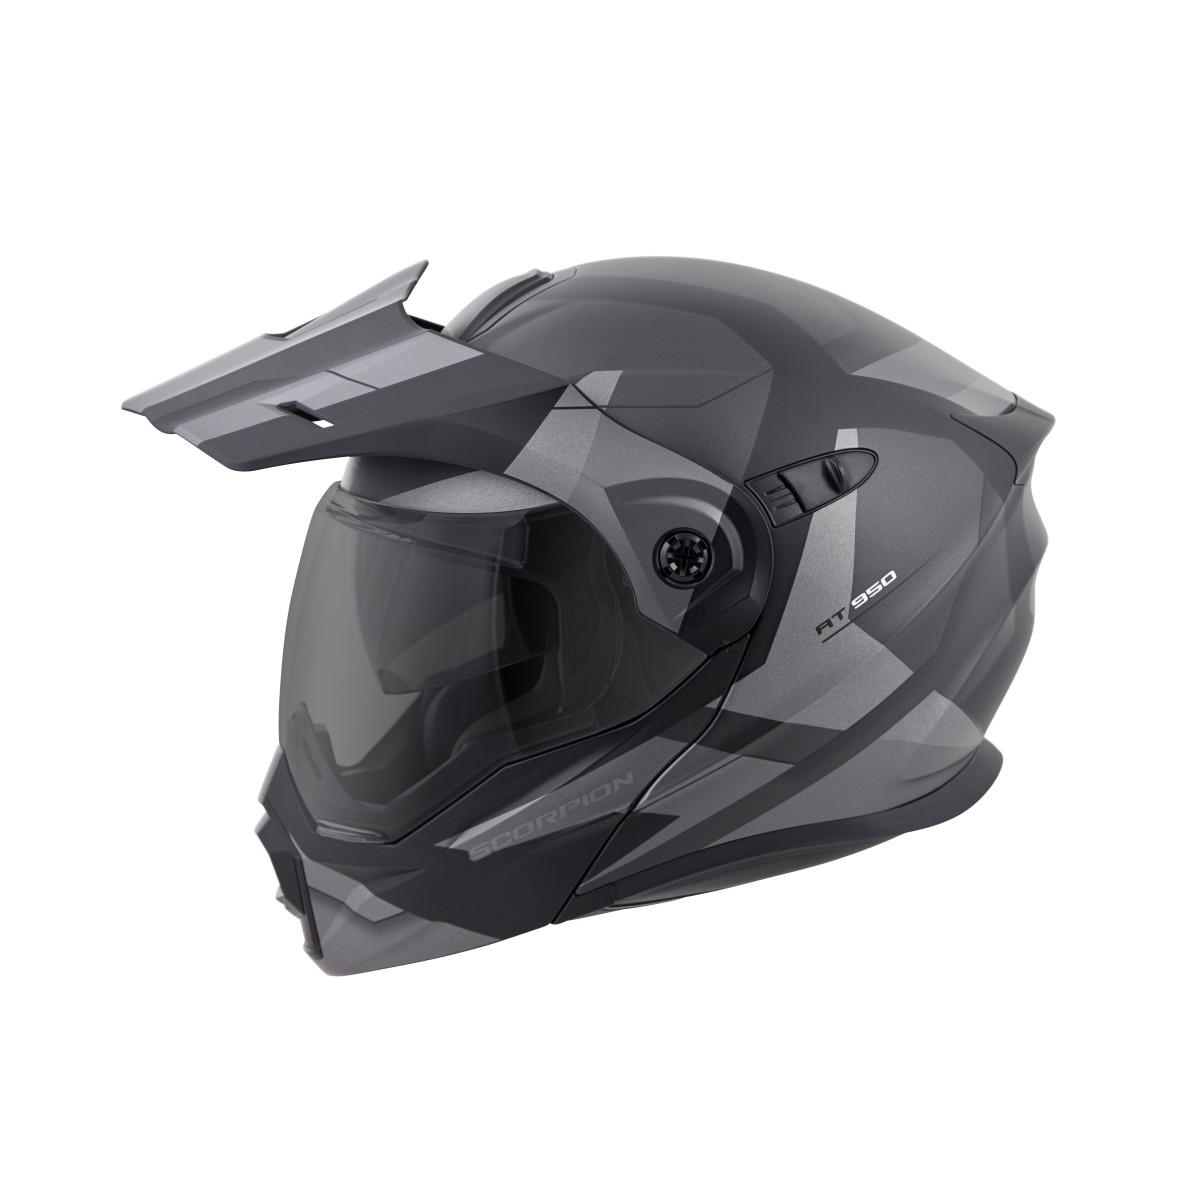 Scorpion EXO-AT950 Adventure Touring Modular Motorcycle Helmet with Sun Visor - Clear Face Shield